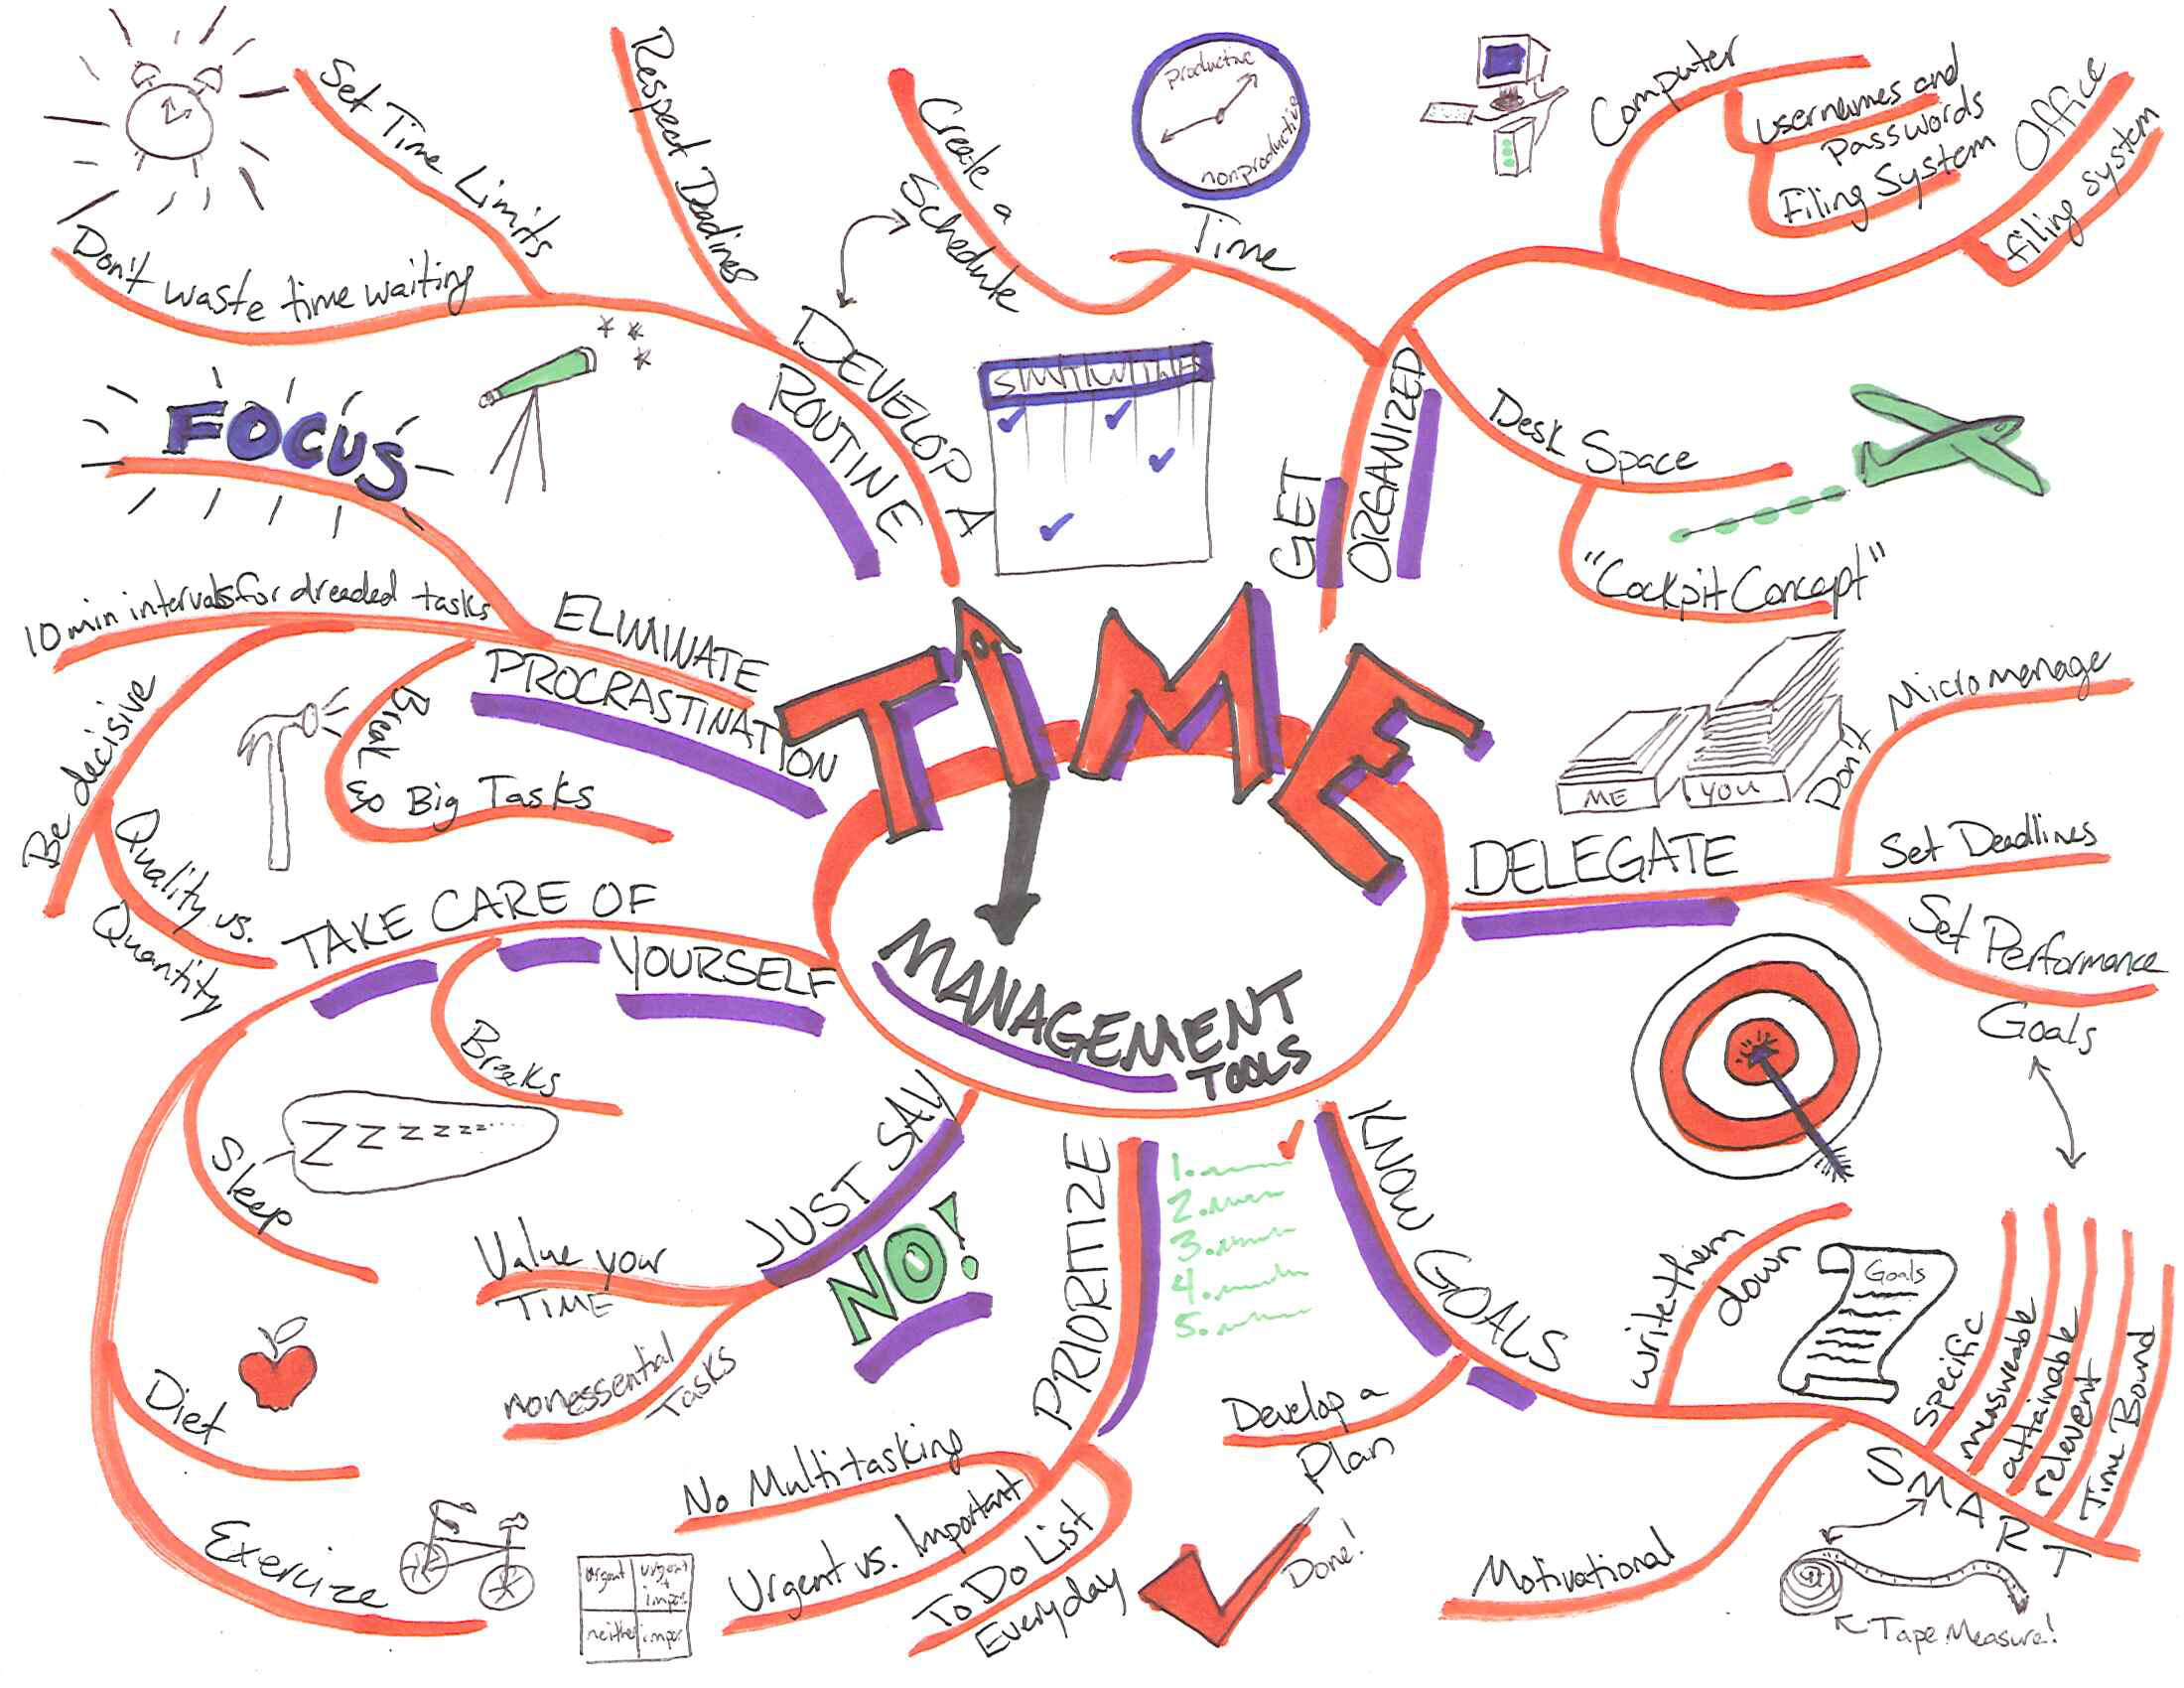 to keep in mind when developing your mind map. This is the fun part